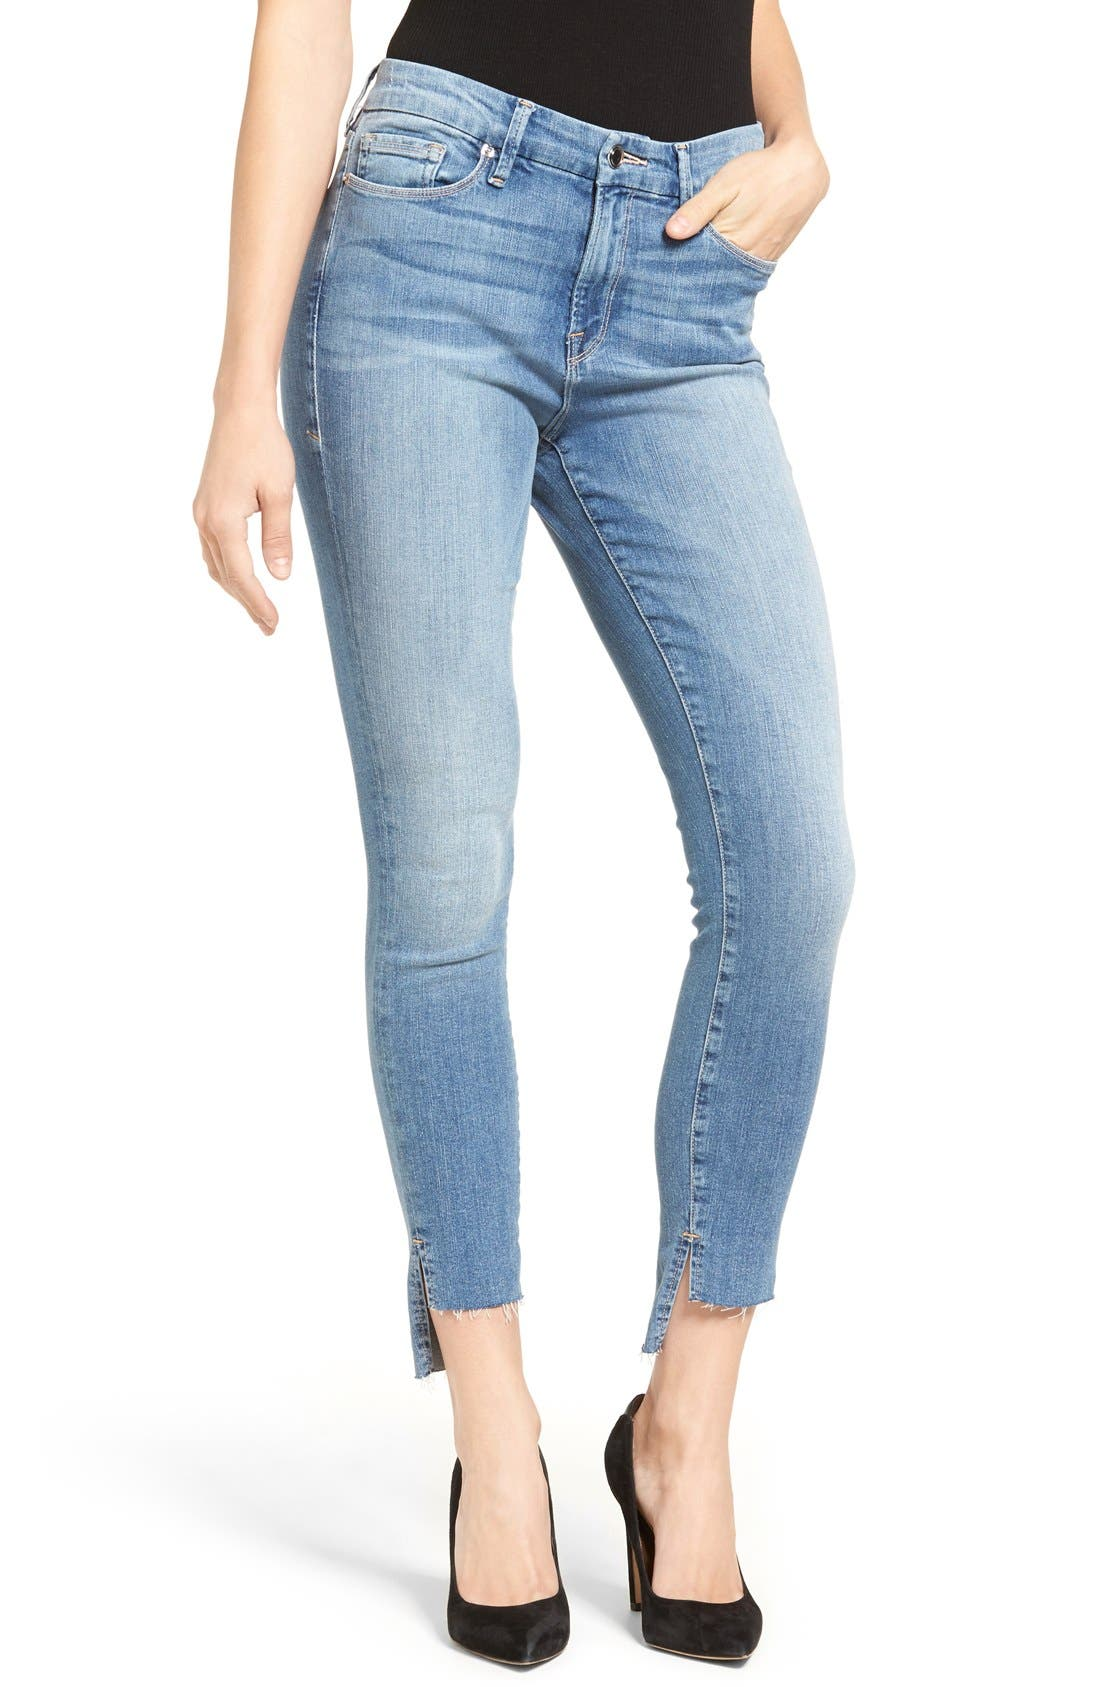 Alternate Image 2  - Good American Good Legs High Waist Skinny Jeans (Blue 007) (Extended Sizes)